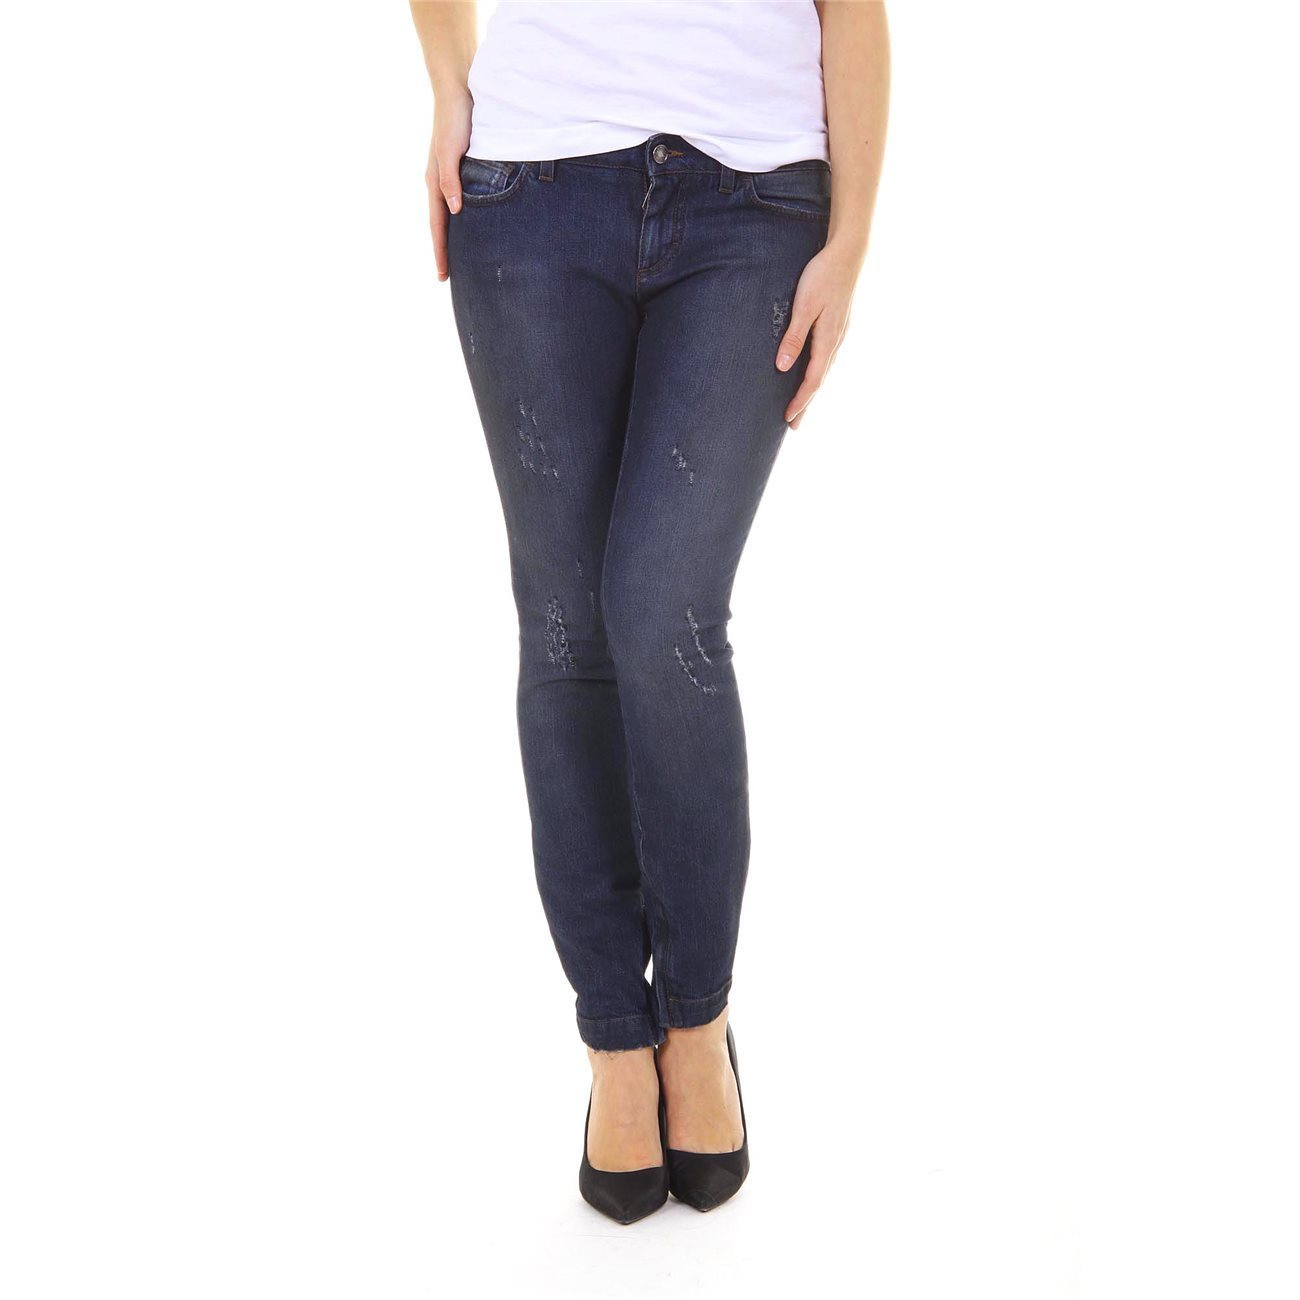 Primary image for Dolce & Gabbana ladies Pretty Fit Denim jeans FT01XD G874M N0095